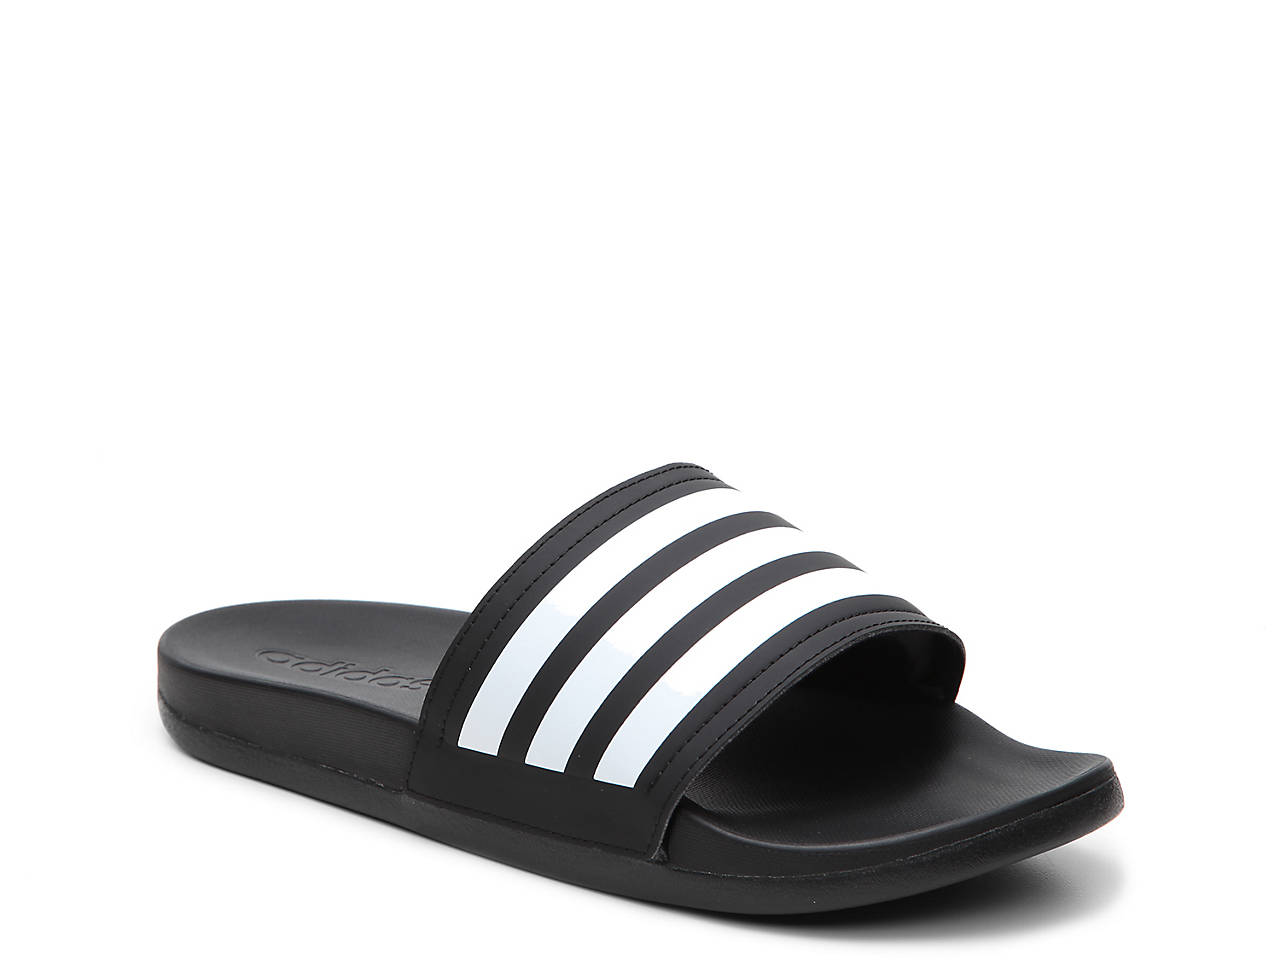 7522c504a adidas Adilette Cloudfoam Ultra Stripes Slide Sandal - Women s ...